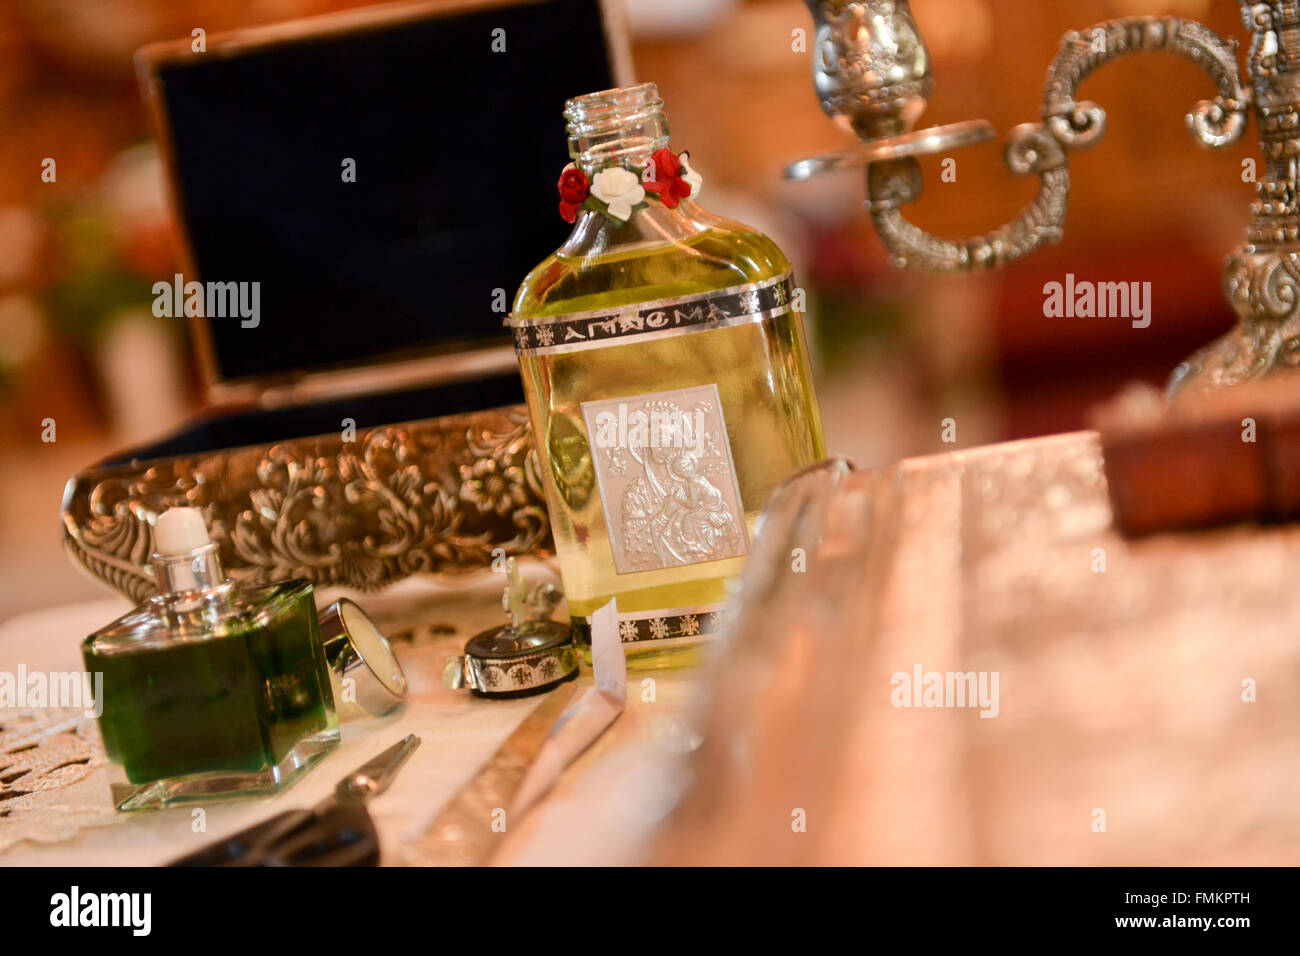 Anointing Oil Stock Photos & Anointing Oil Stock Images - Alamy